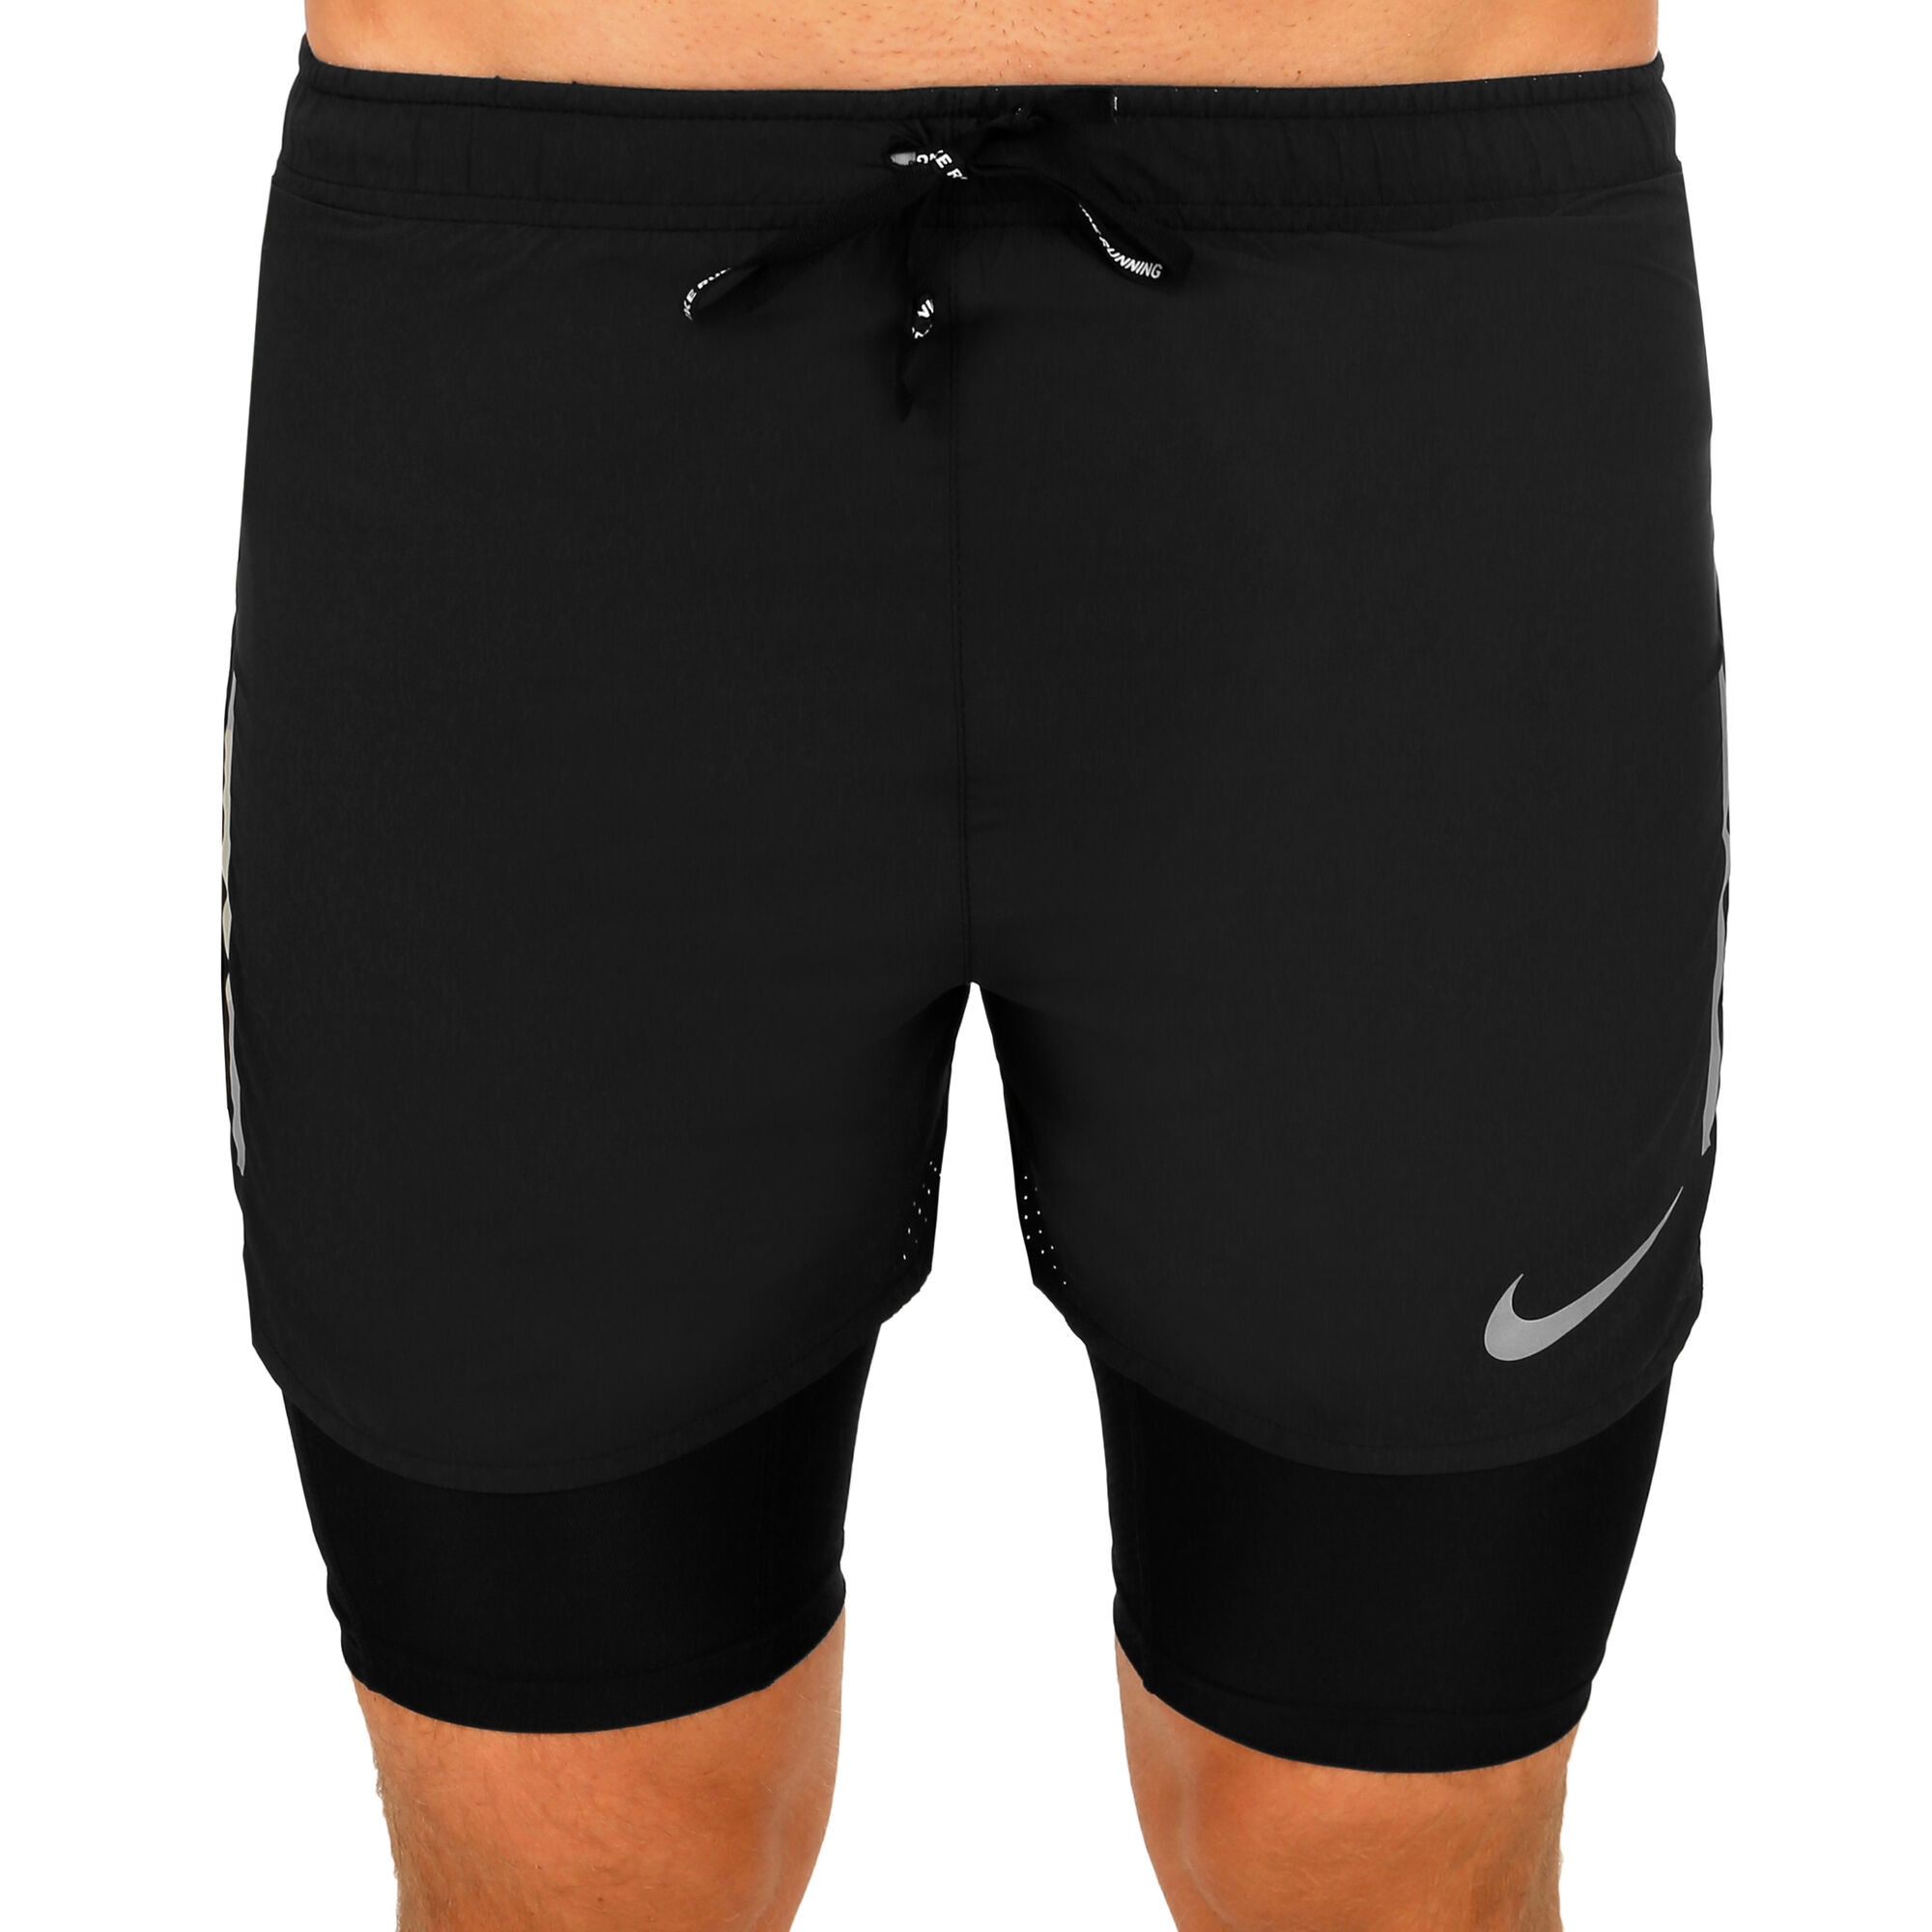 1be37a63e661 buy Nike Flex Stride Short BF 7IN Shorts Men - Black